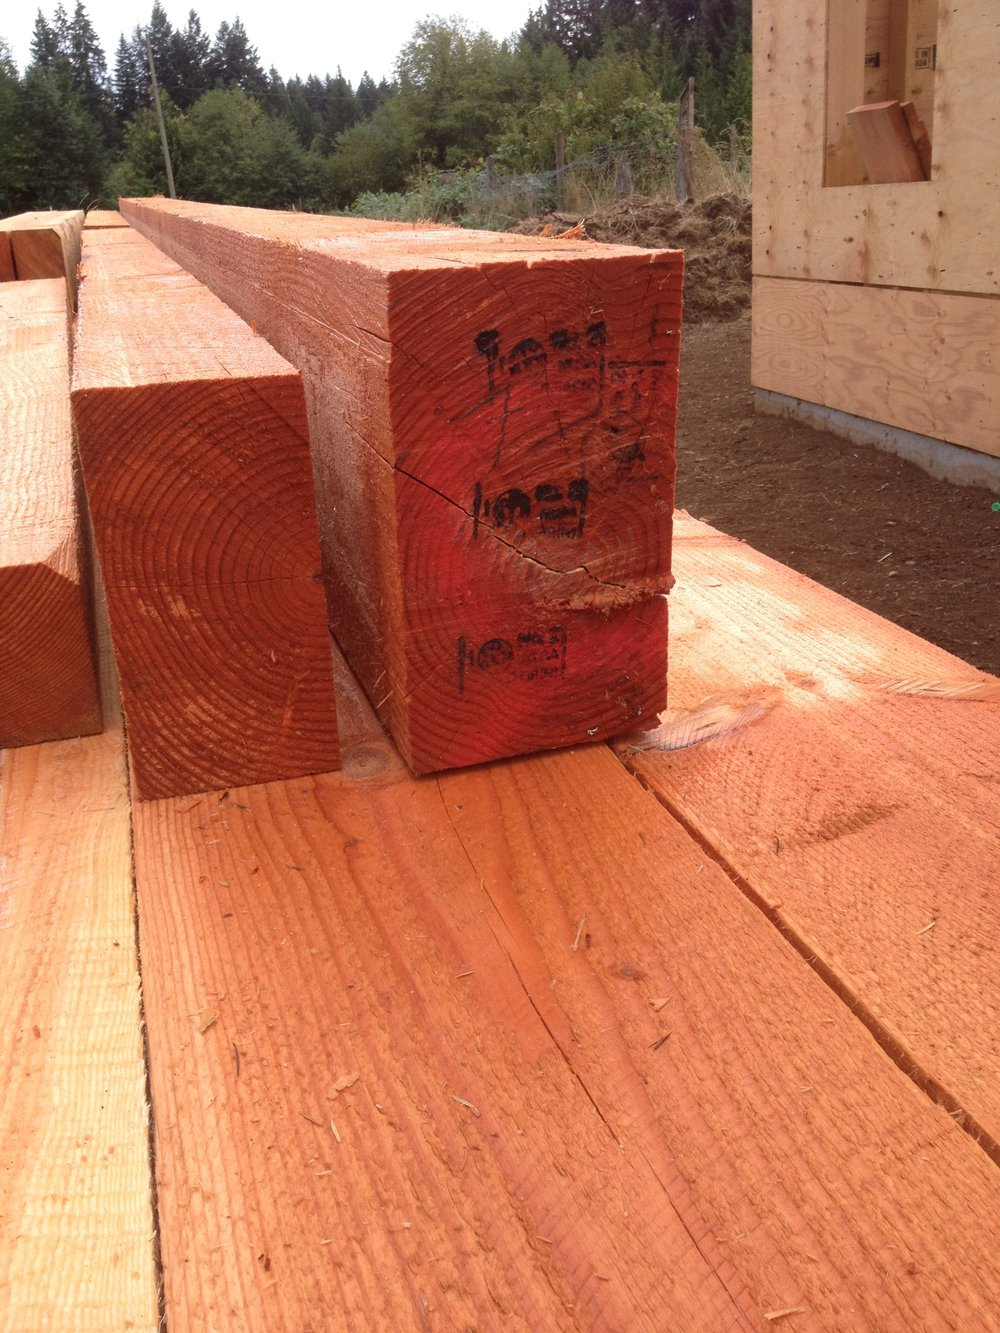 CCFC wood stamped and loaded onto the truck heading to Courtenay for Zoe's farmhouse renovation.